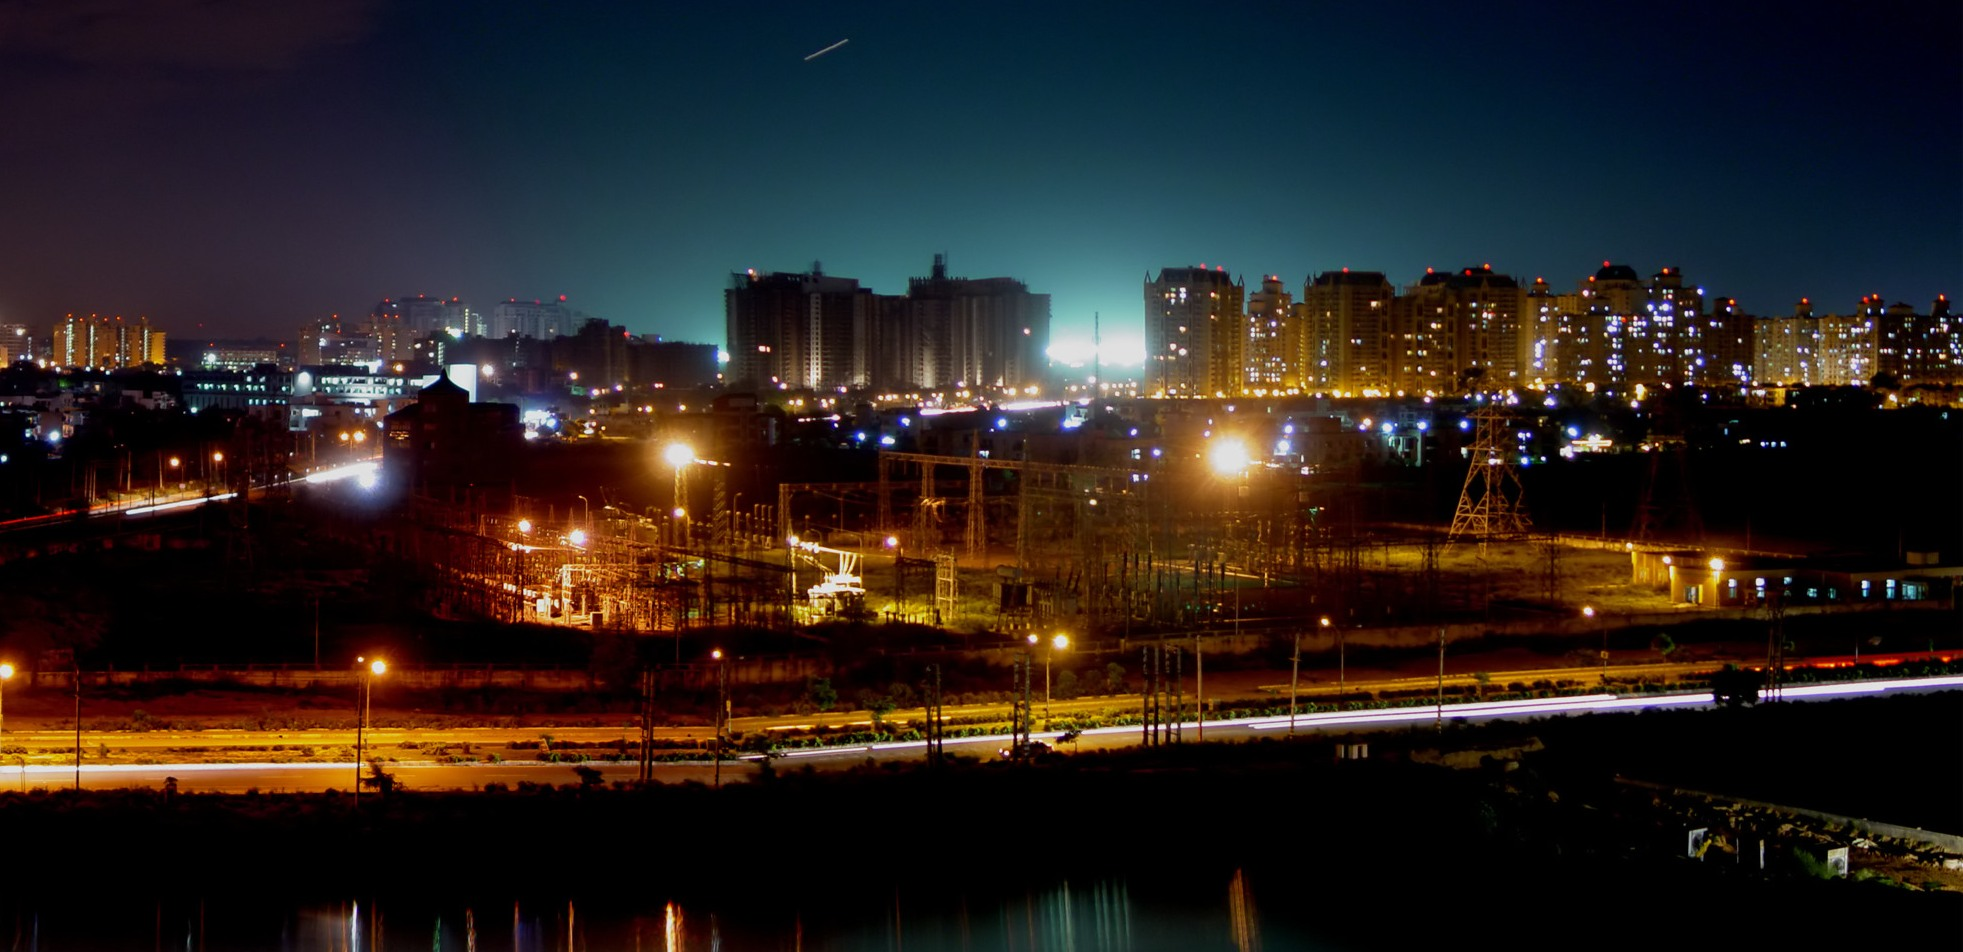 Gurgaon night skyline